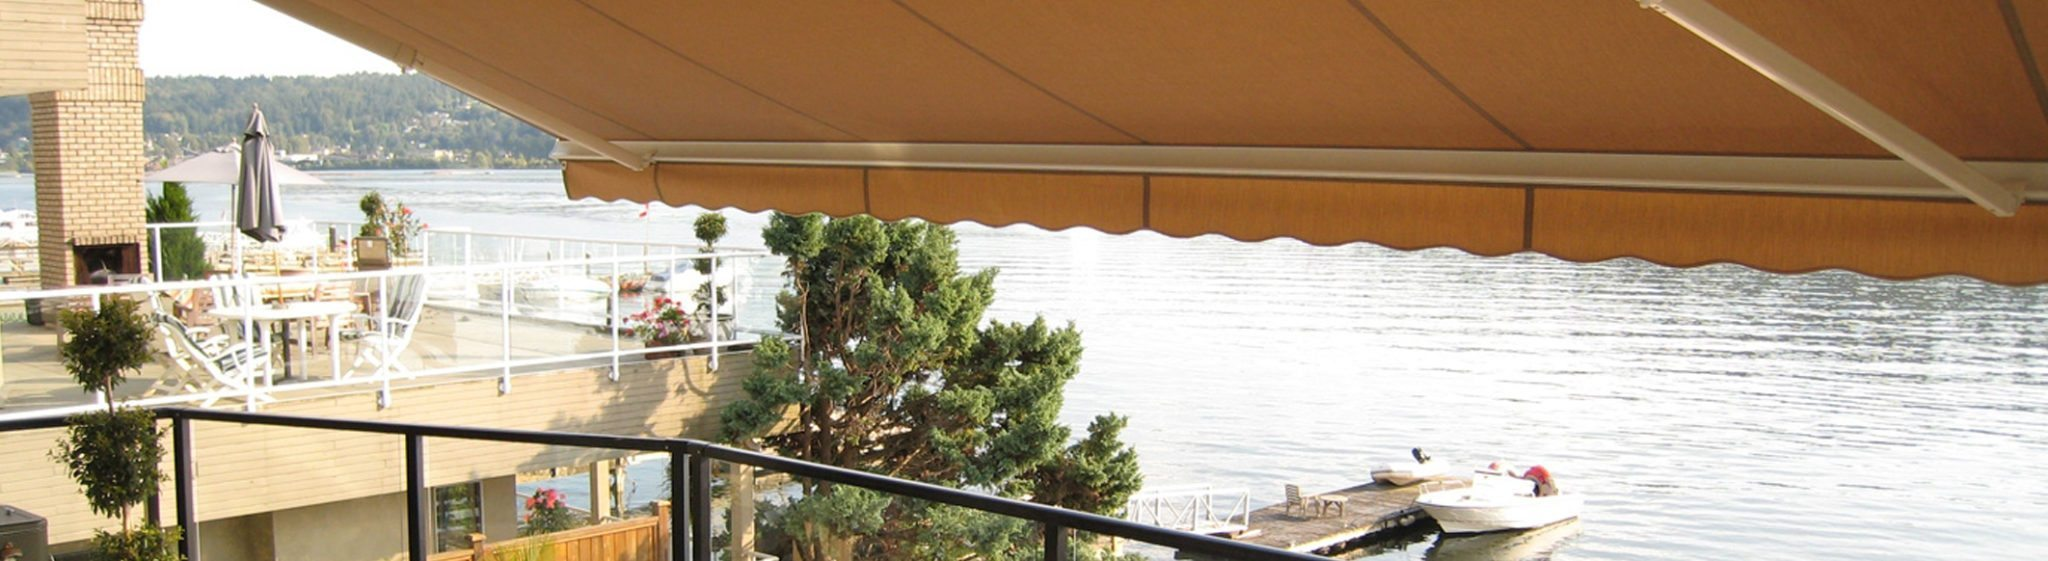 Awning, Awnings, Retractable Awnings, Cape Cod Awnings, Long Island Awnings, Shade and Shutter Systems